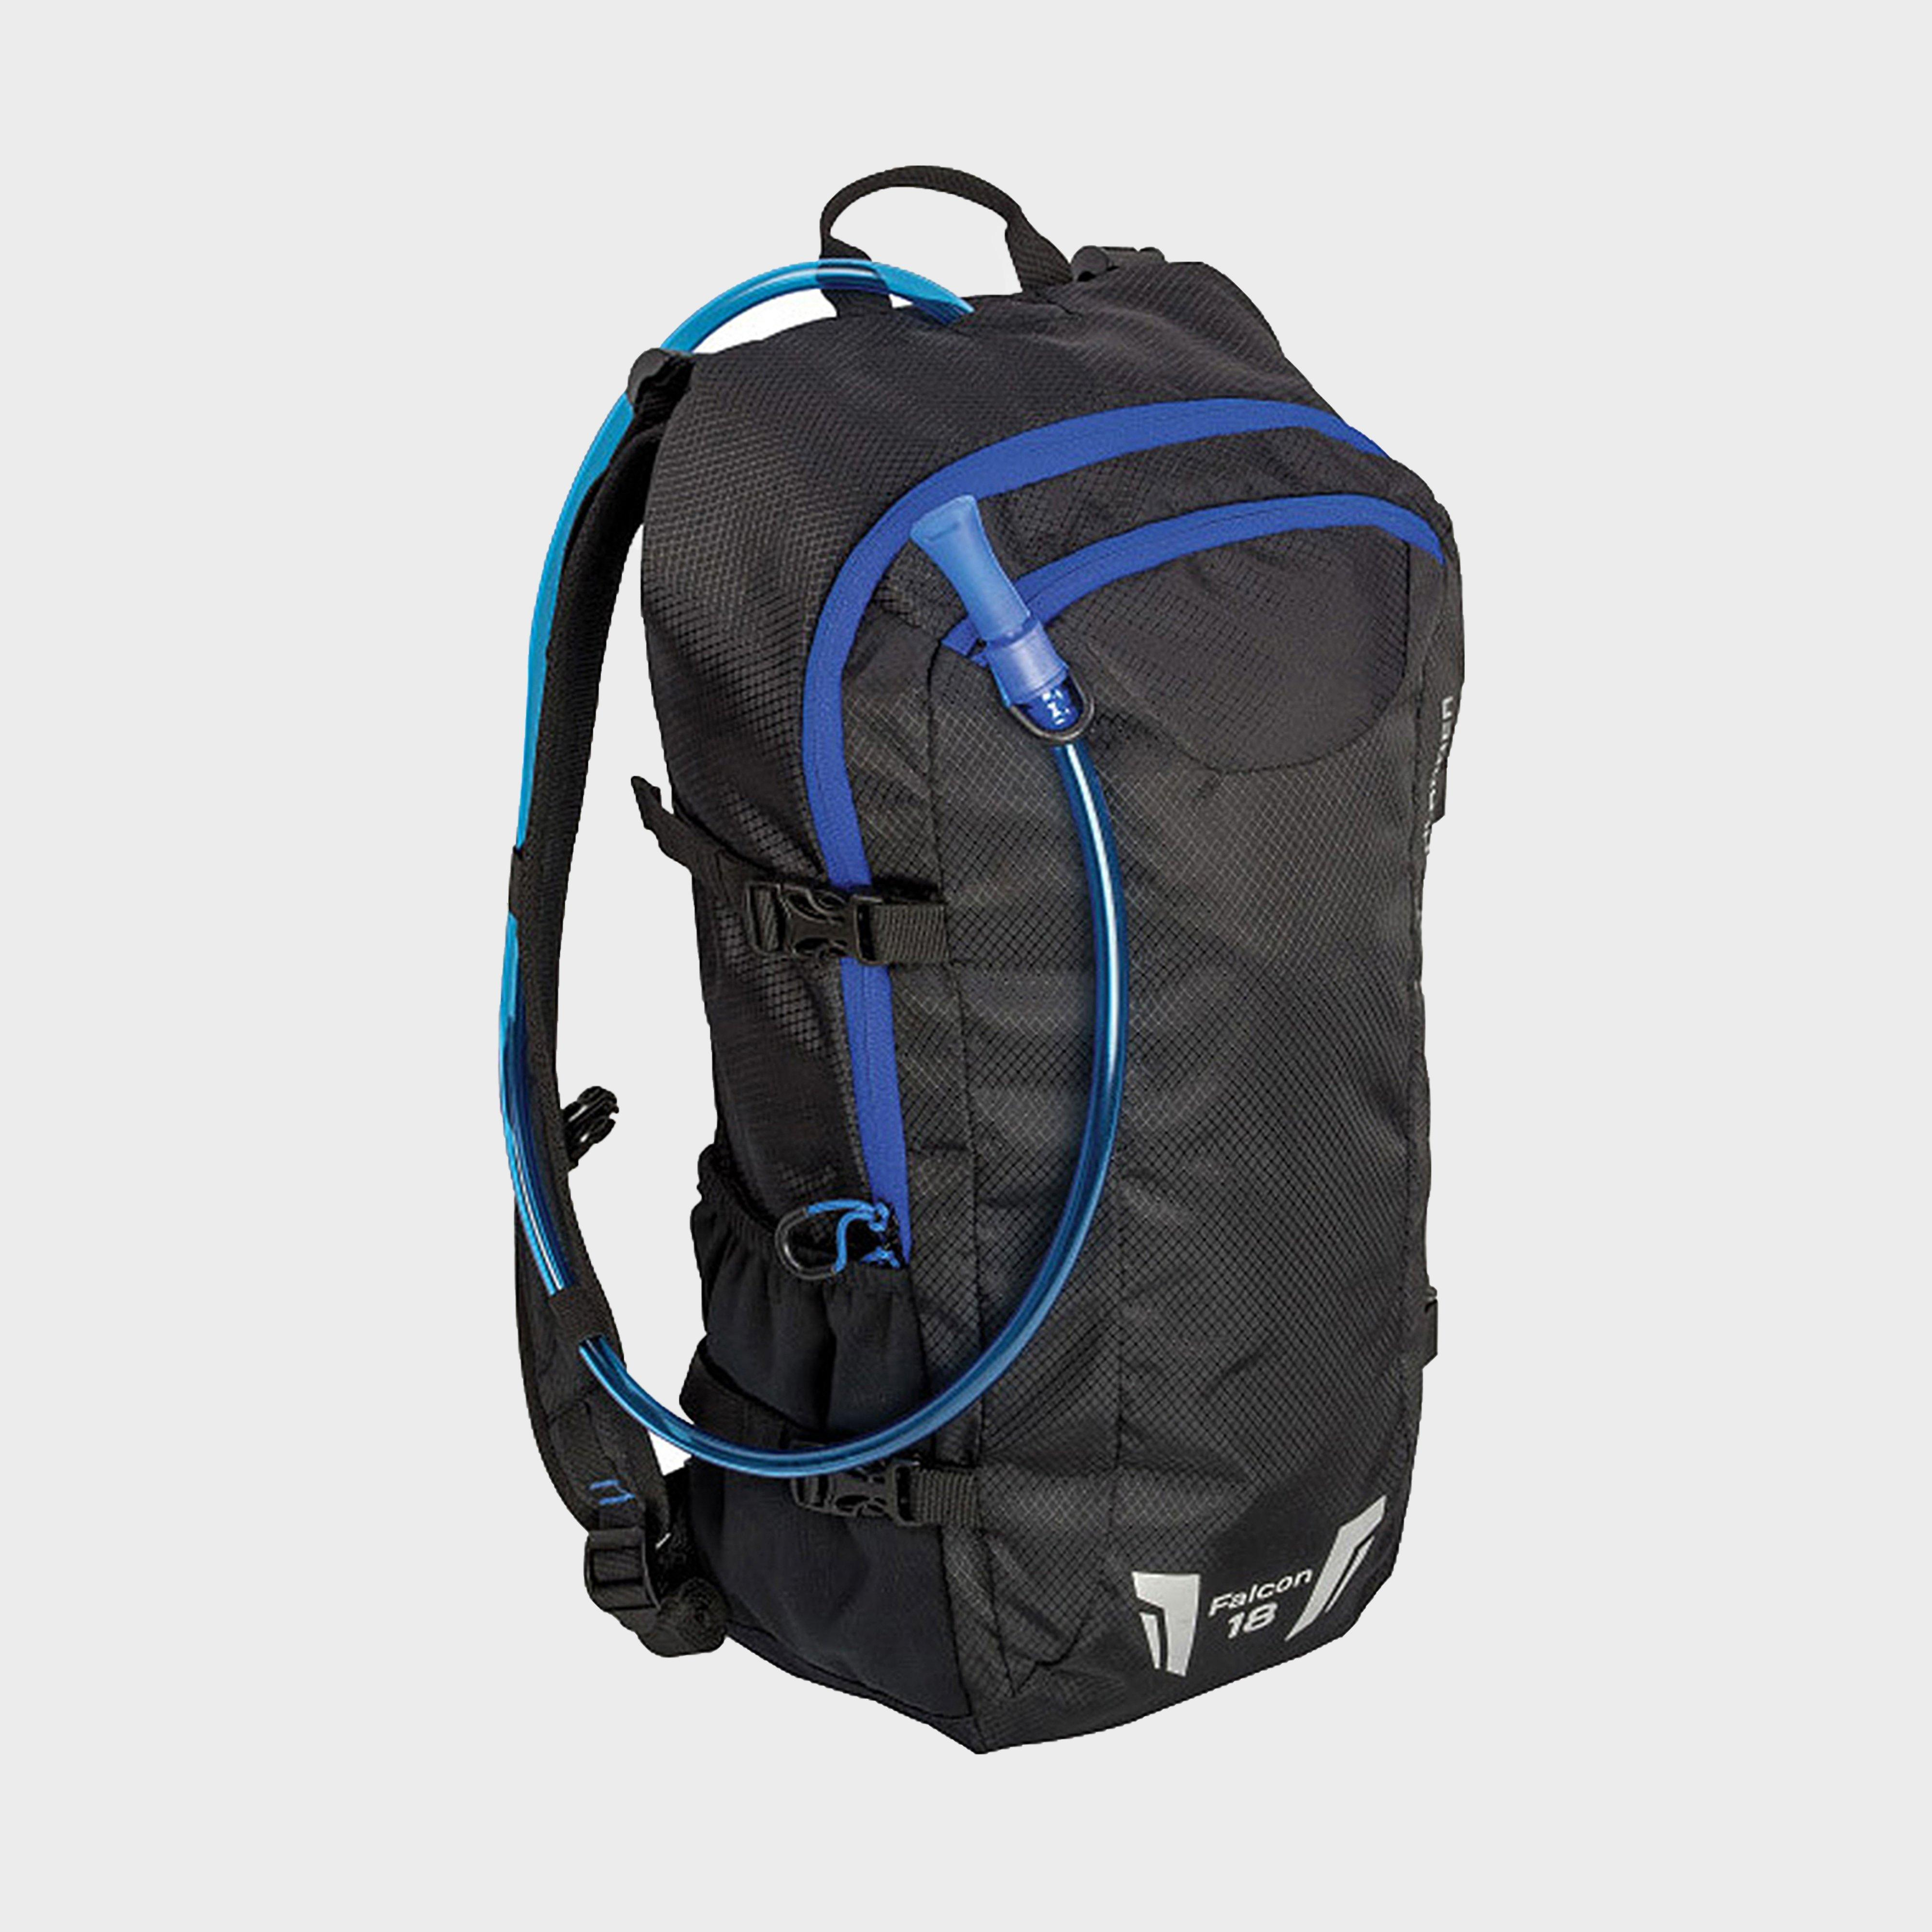 Highlander Highlander Falcon 18 Hydration Backpack